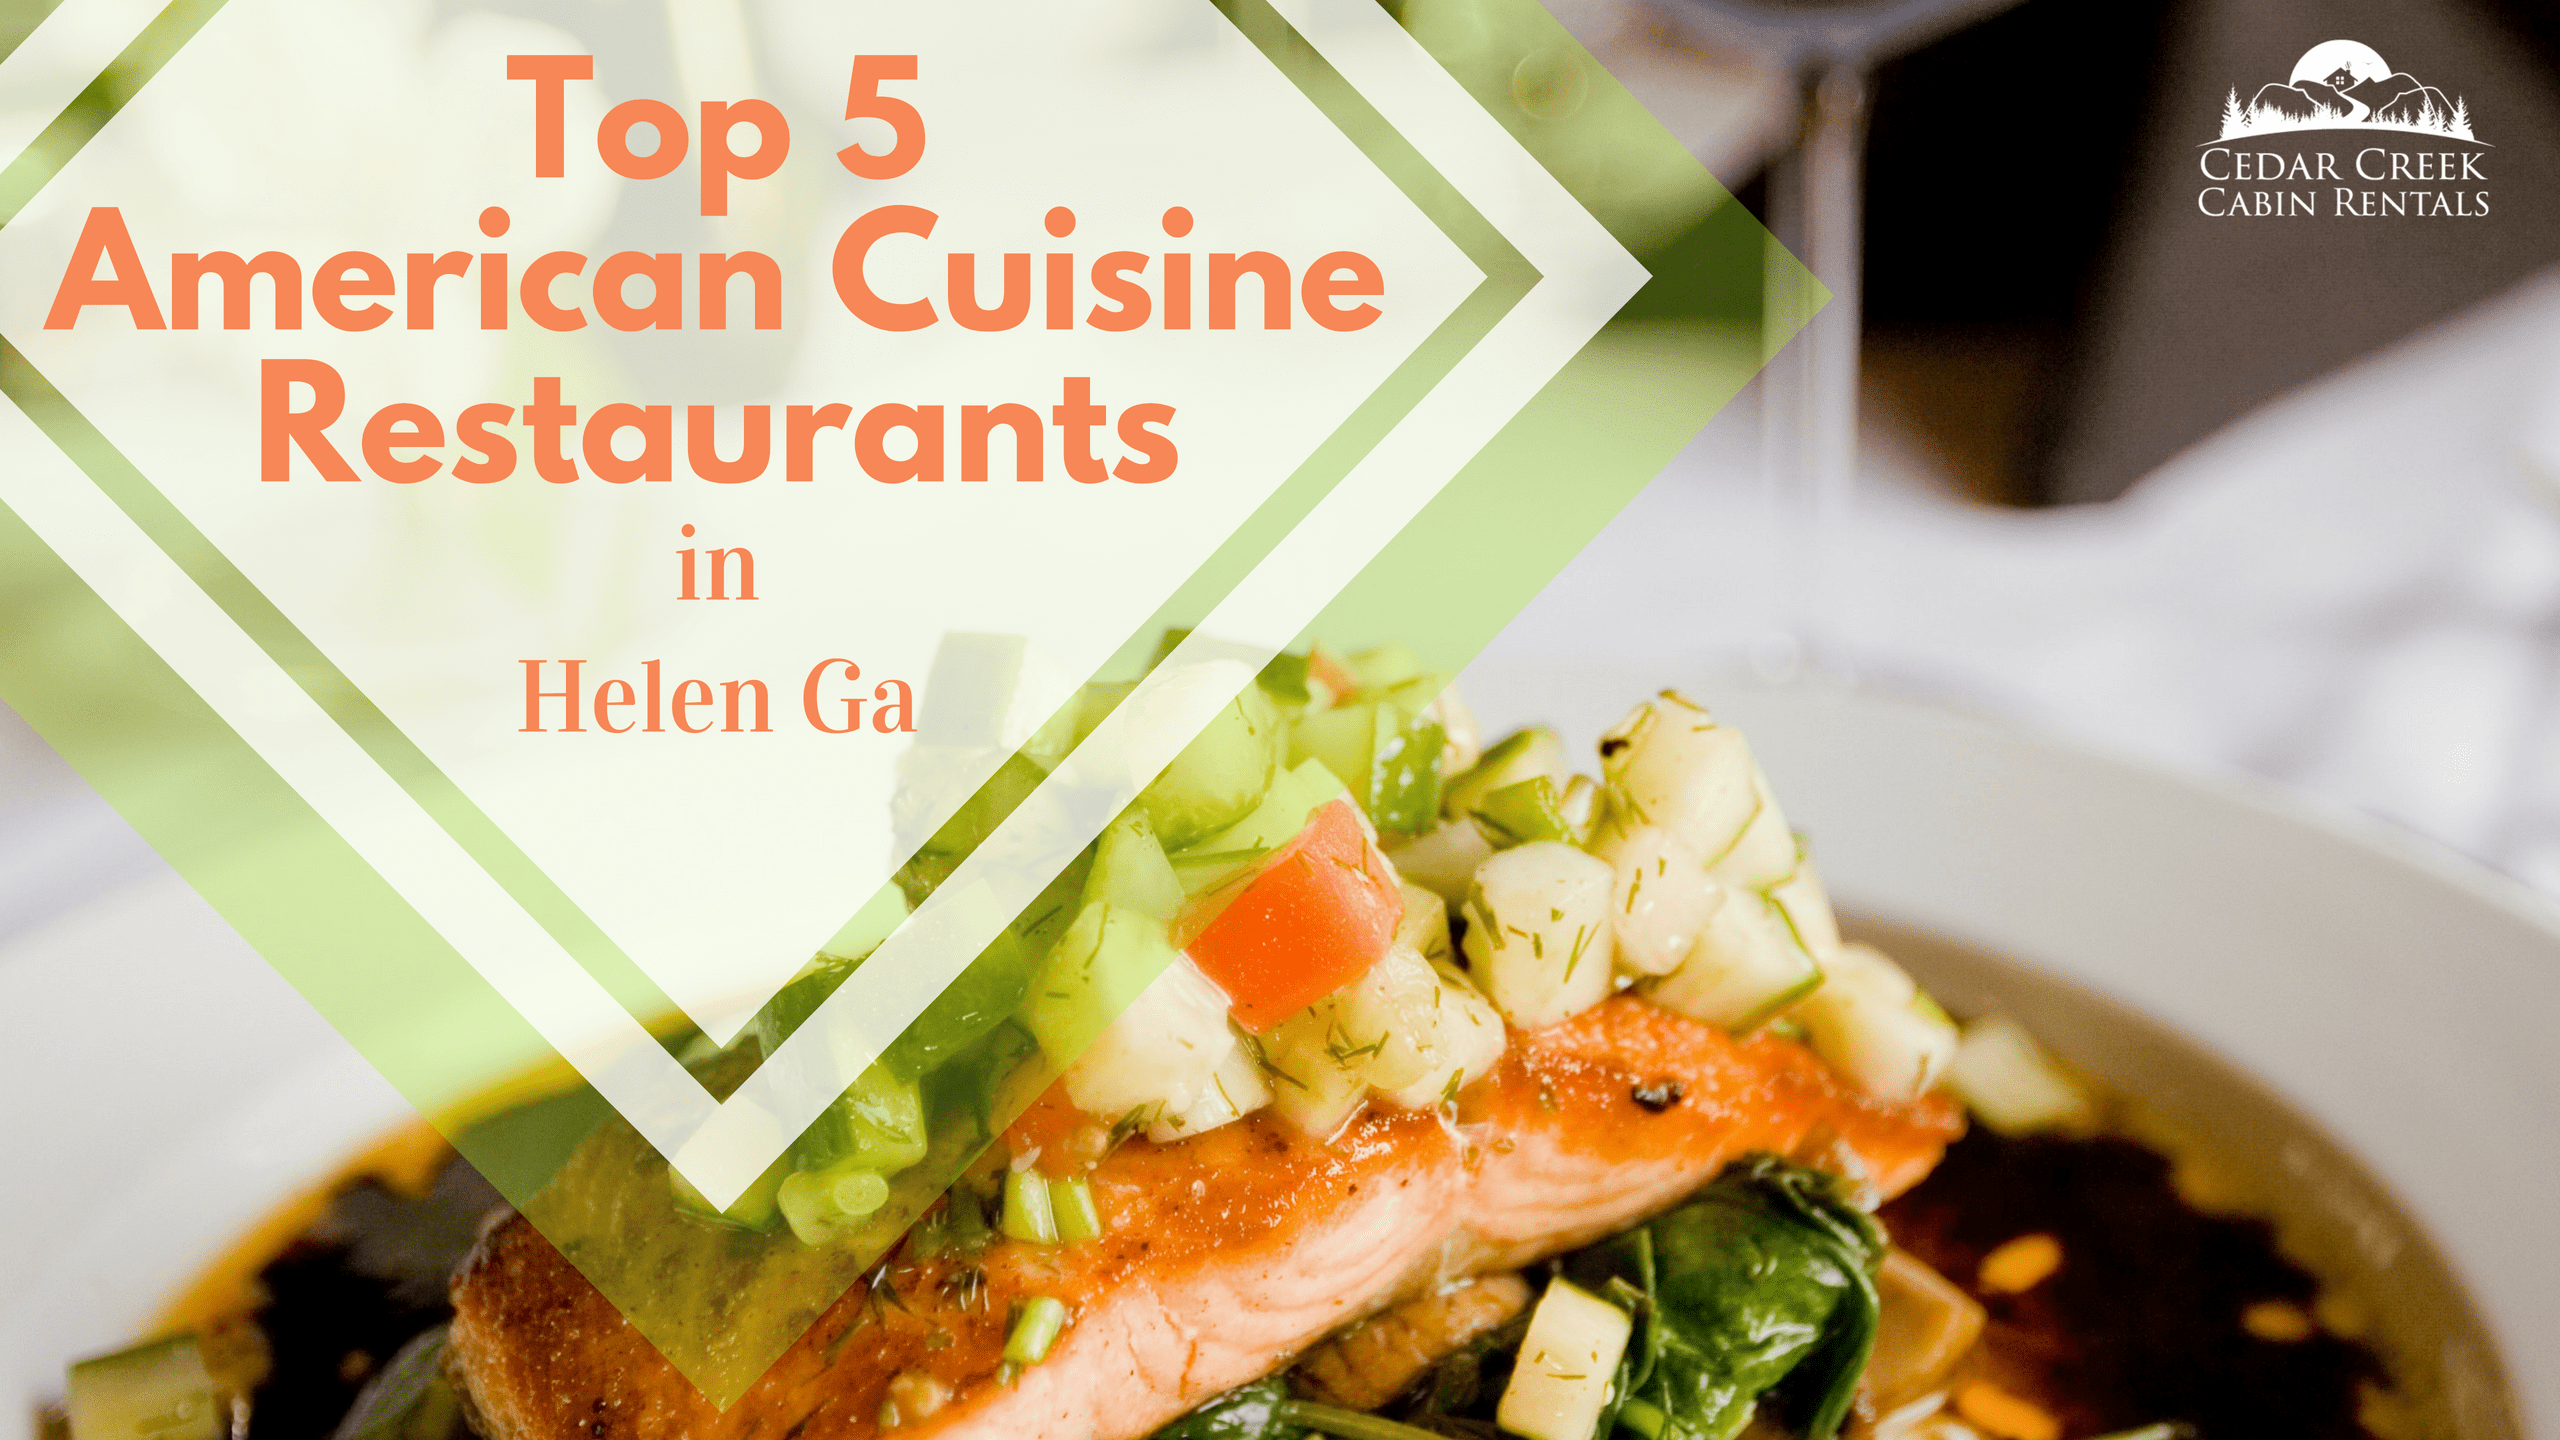 Top-5-American-Cuisine-Restaurants-Helen-Georgia-Blog-Banner-min